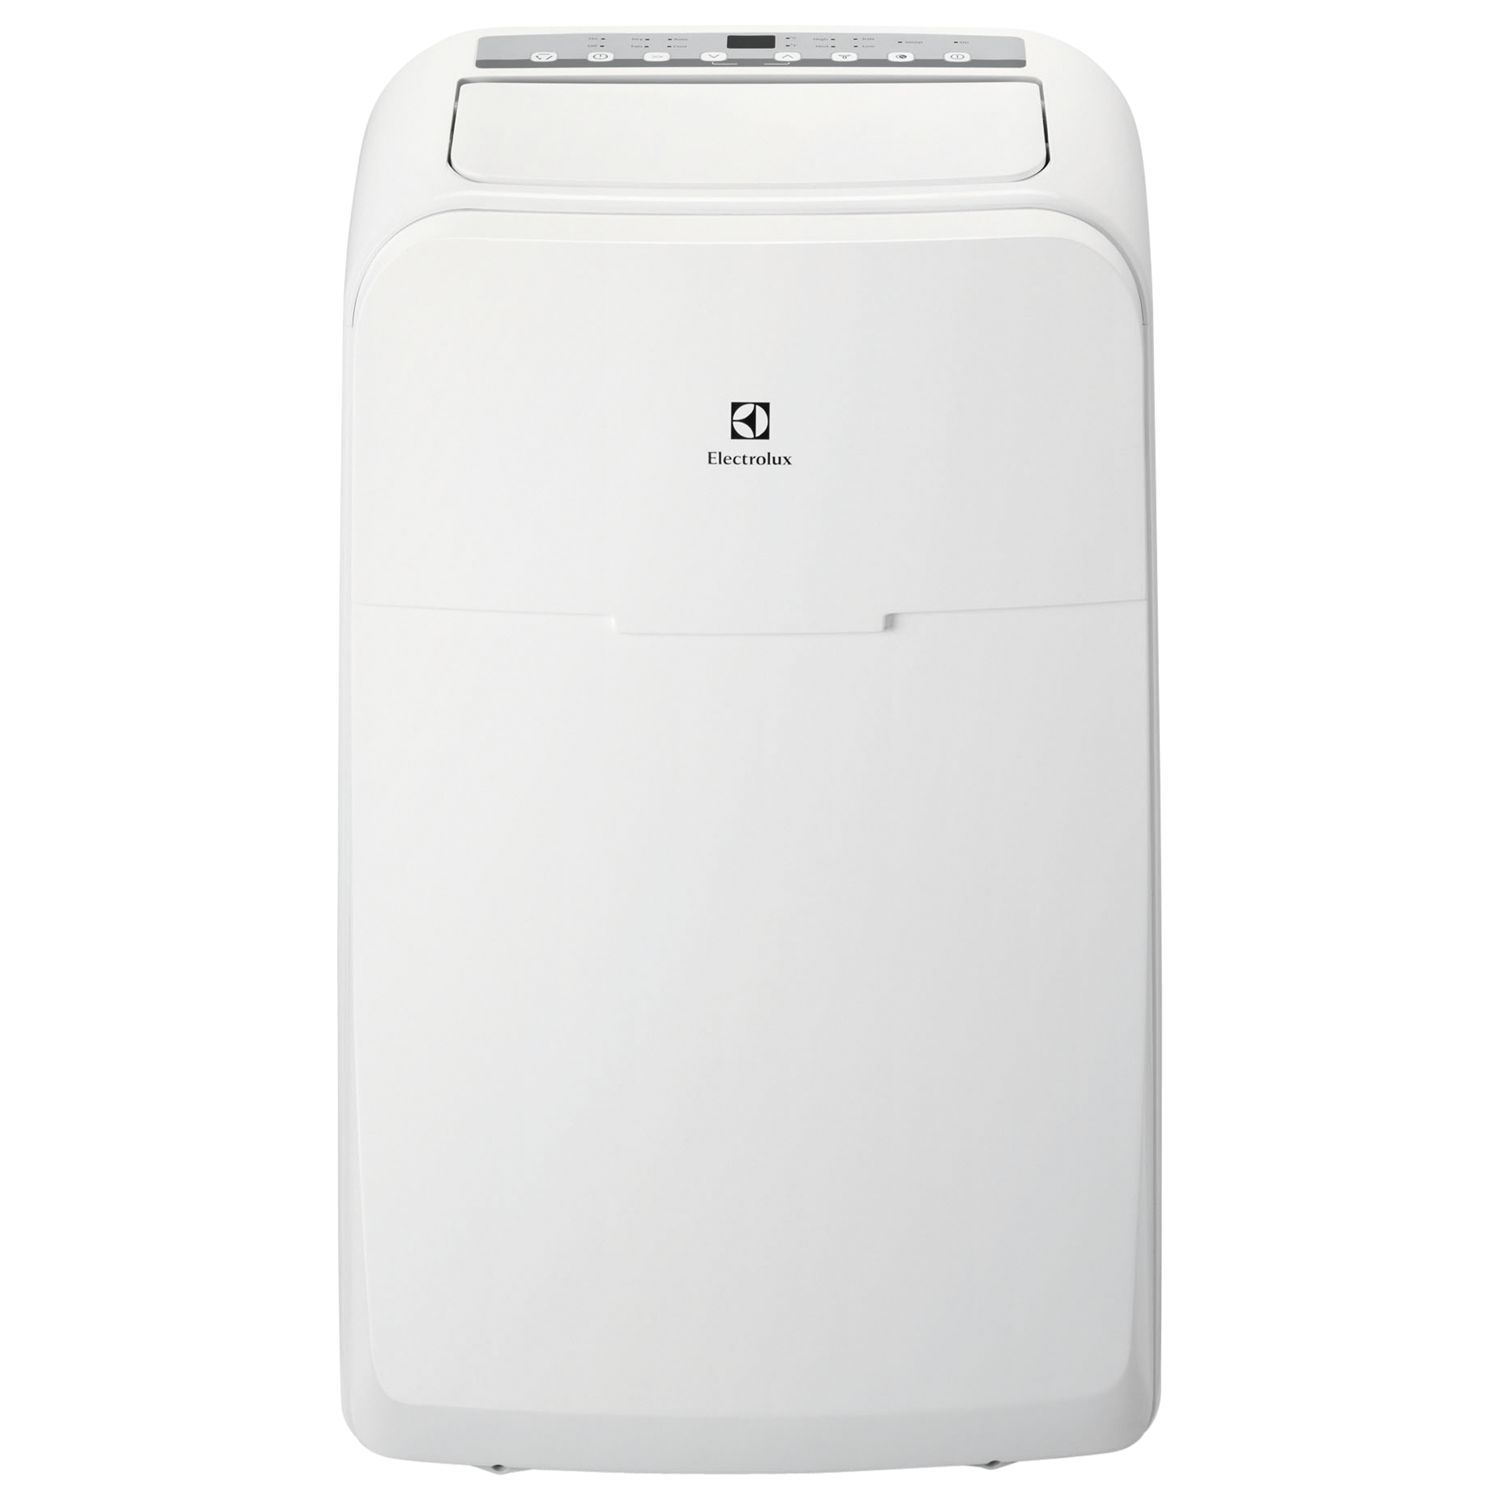 Electrolux Electrolux EXP12HN1WI Portable Air Conditioner, White